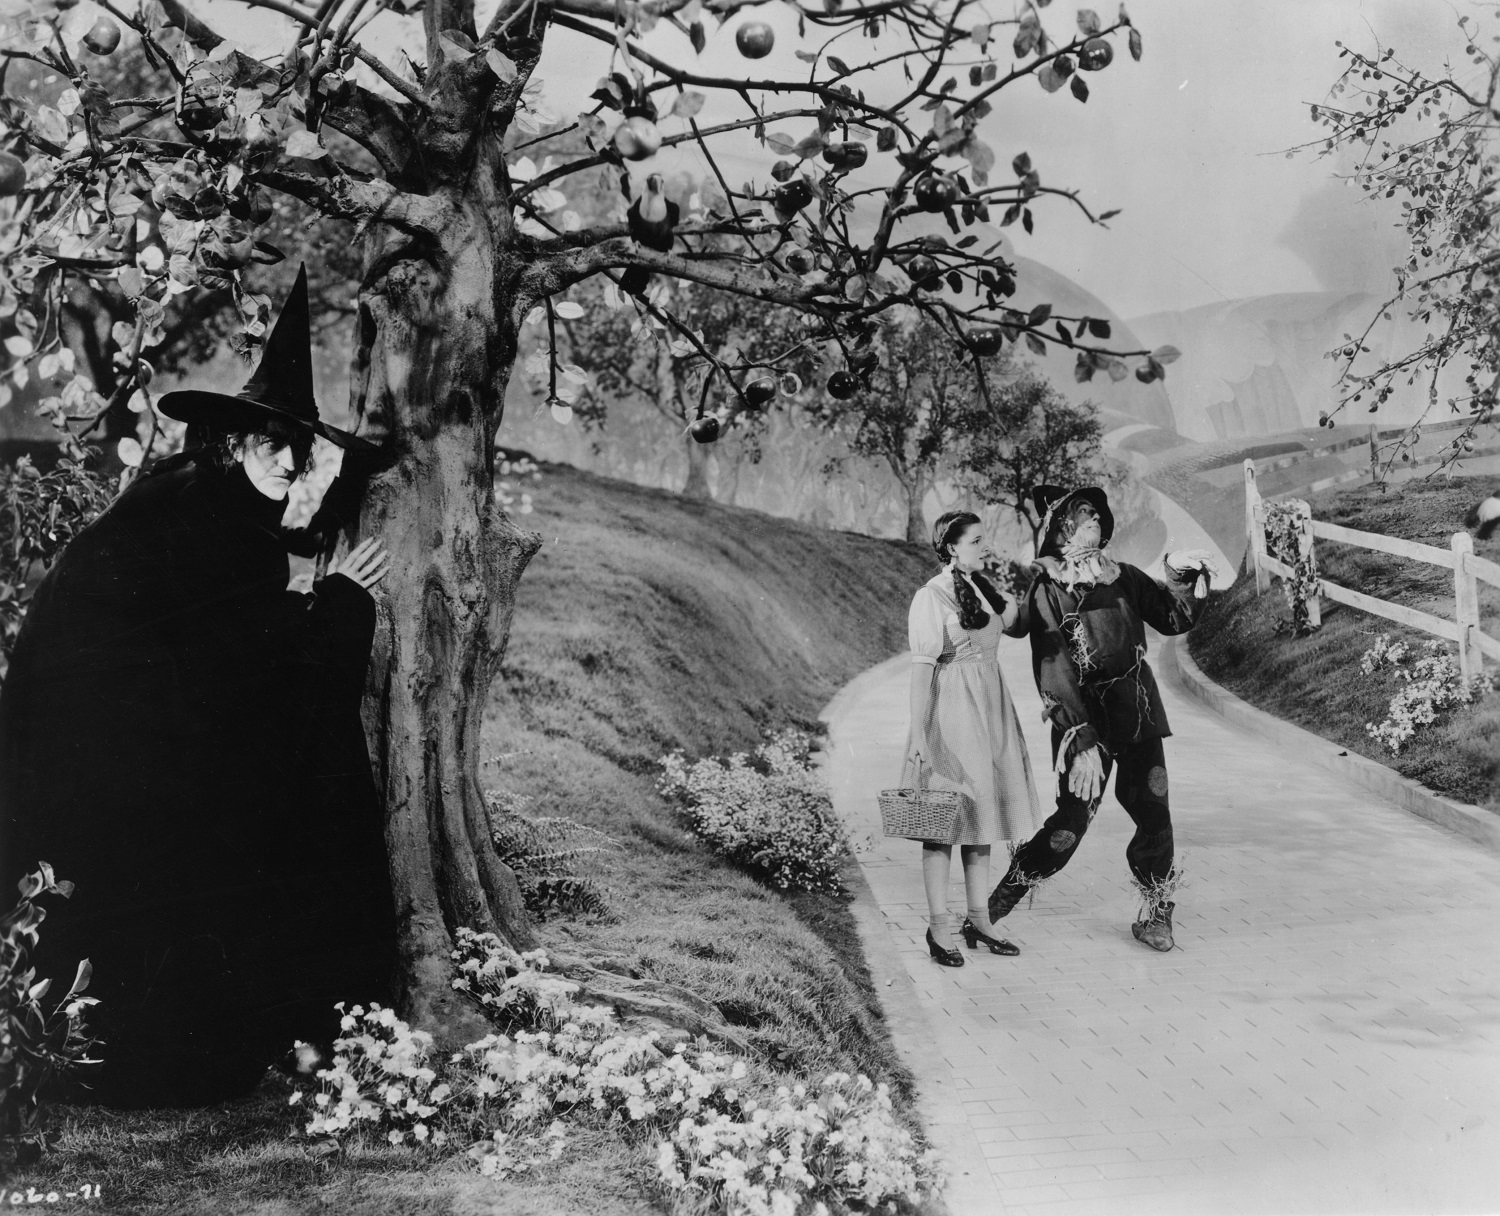 Margaret Hamilton, as The Wicked Witch of the West, hides behind a tree from Dorothy, played by Judy Garland (1922 - 1969), and the scarecrow as they make their way down the yellow brick road in a scene from The Wizard of Oz